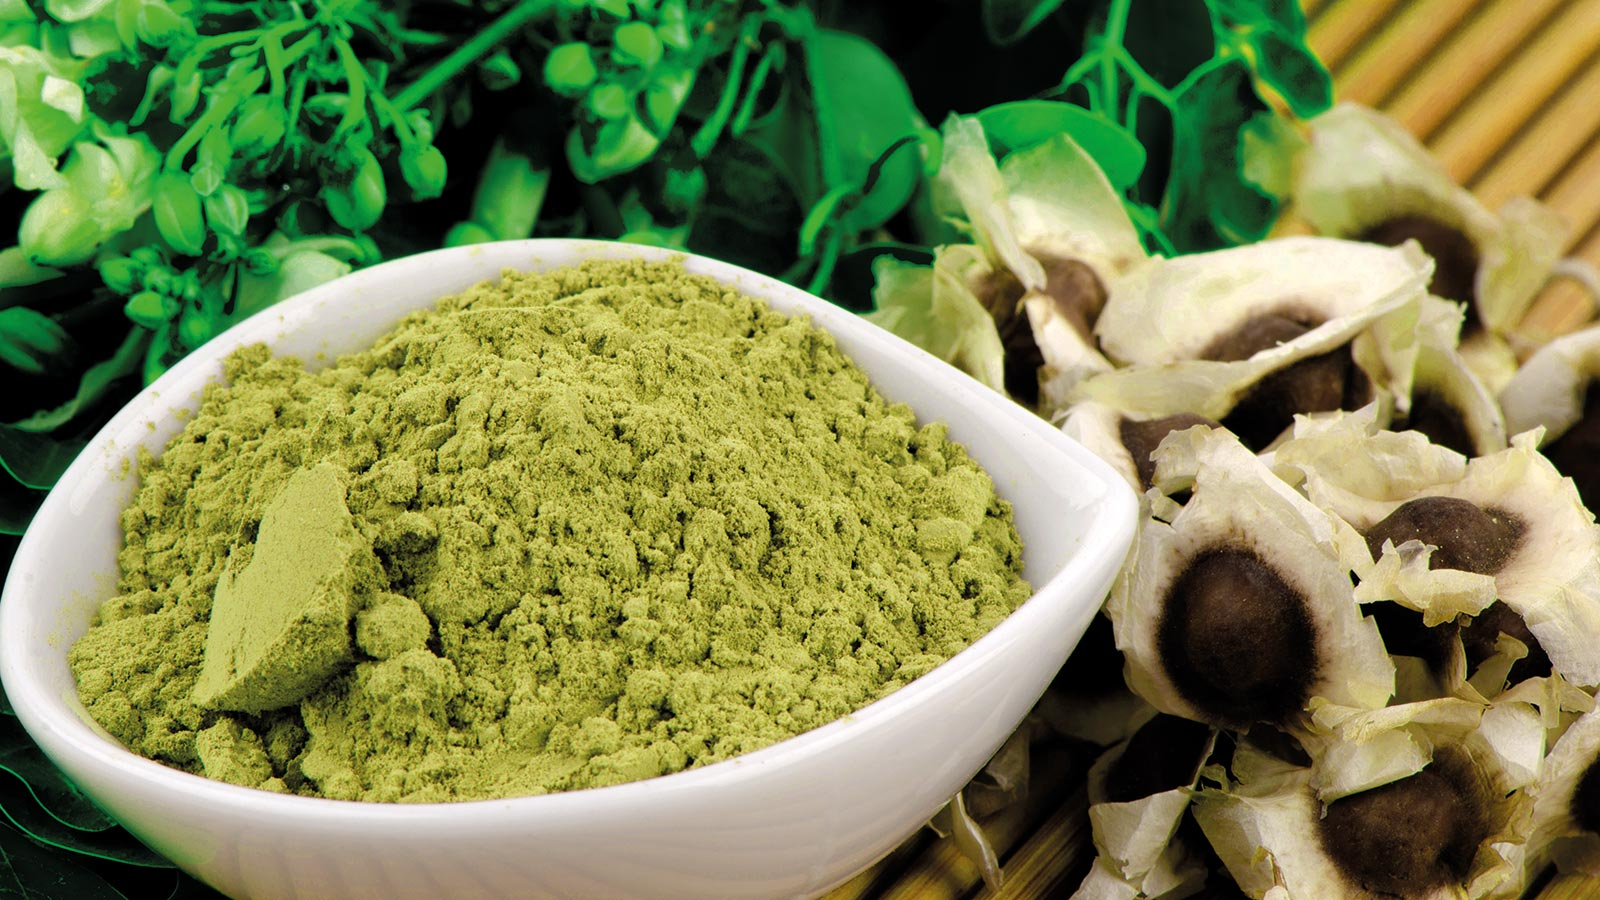 Moringa-based products